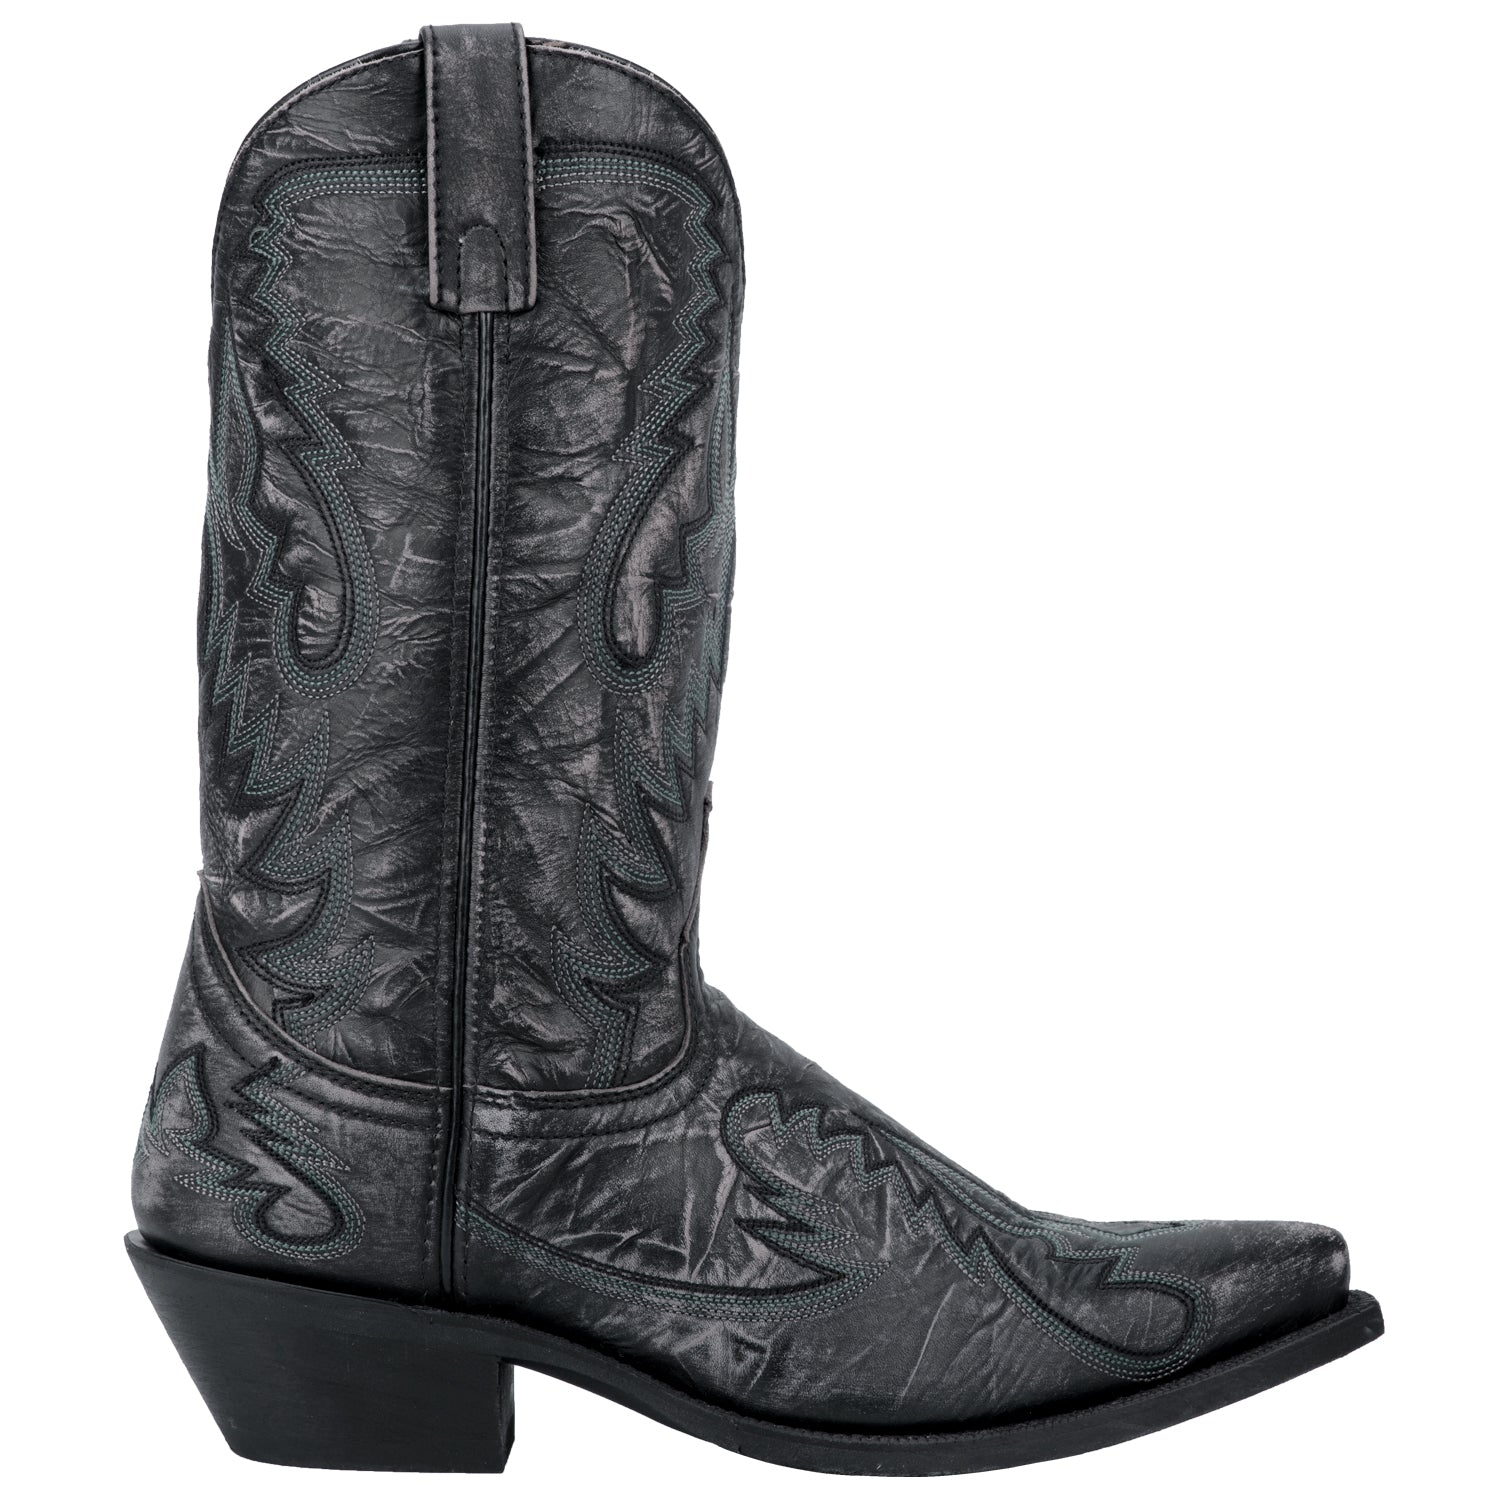 GARRETT LEATHER BOOT 4253533831210